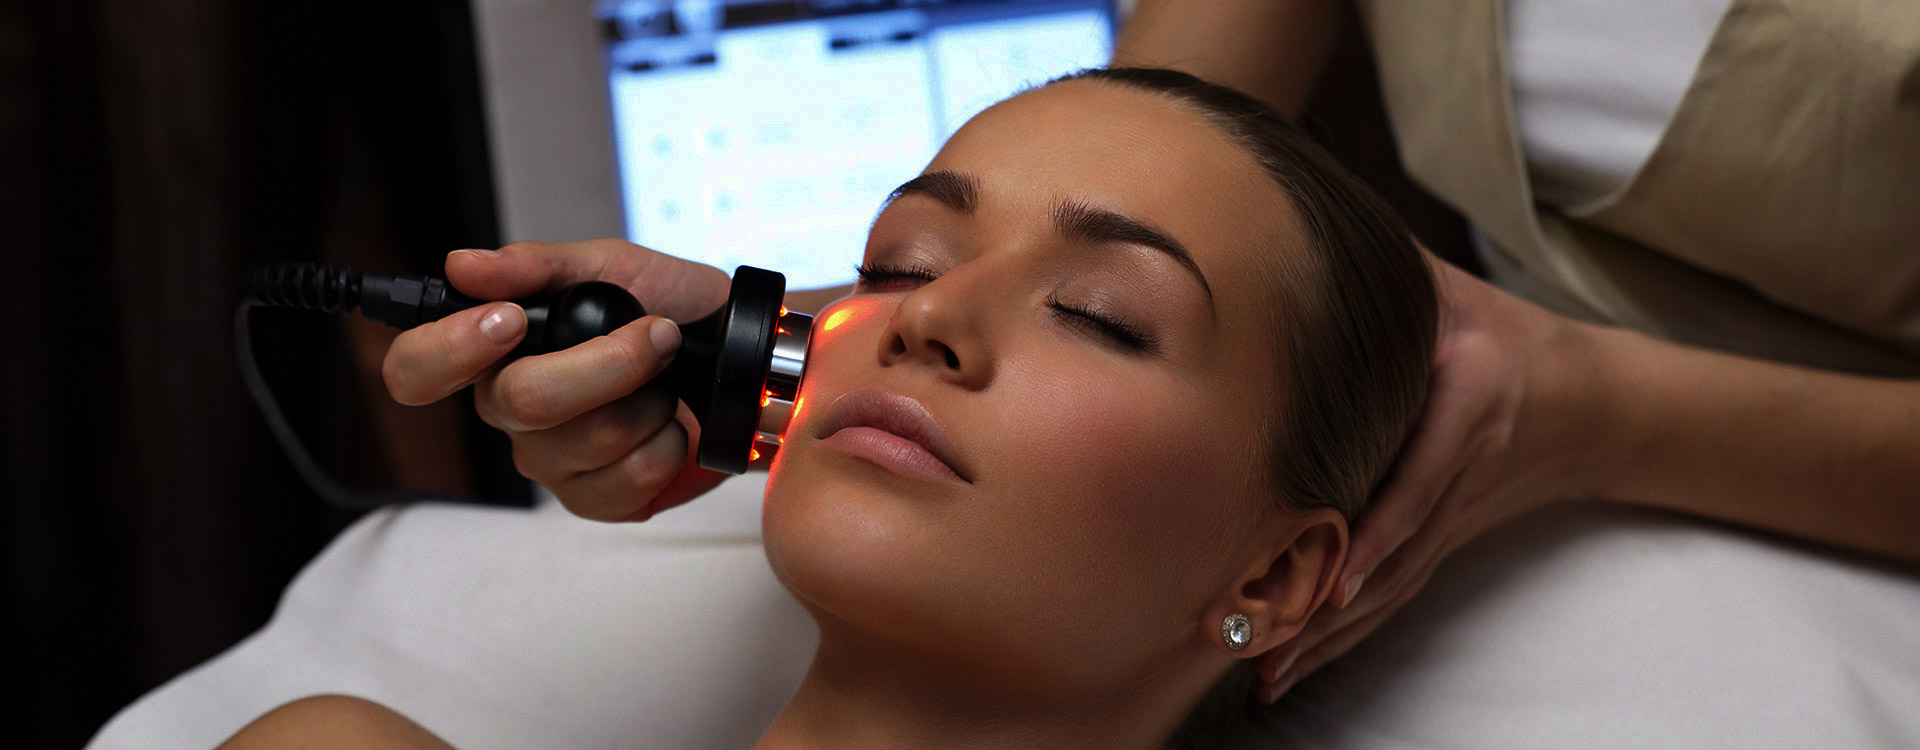 Diode Laser in San Diego, Los Angeles, Riverside